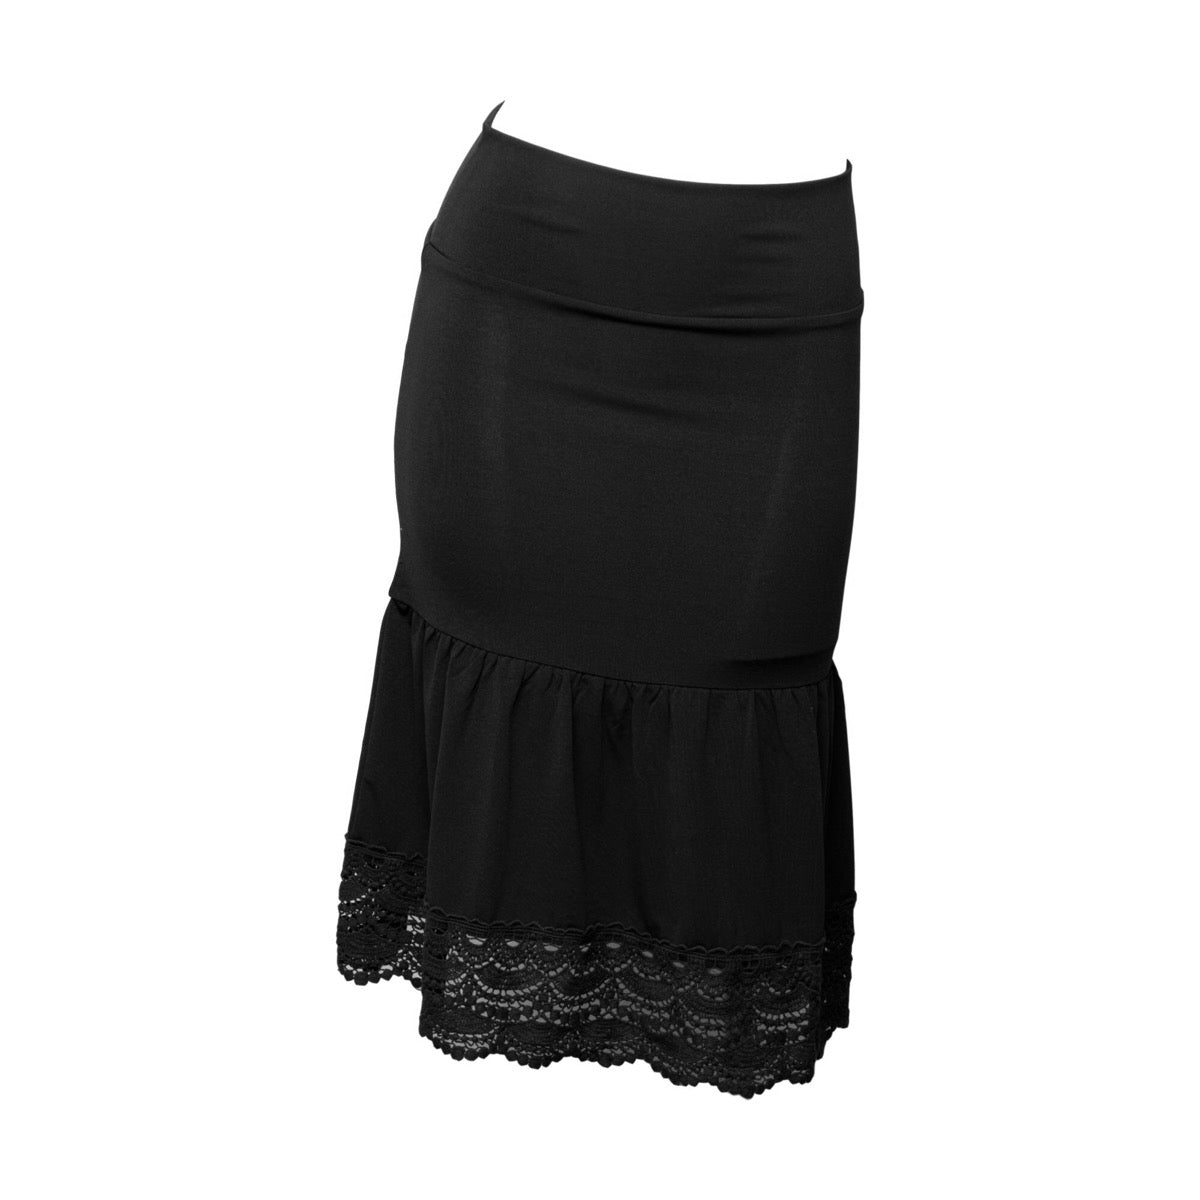 Desert Rose Half Slip | black, skirt extenders, Peekaboo Chic | Modest Layering Apparel for women